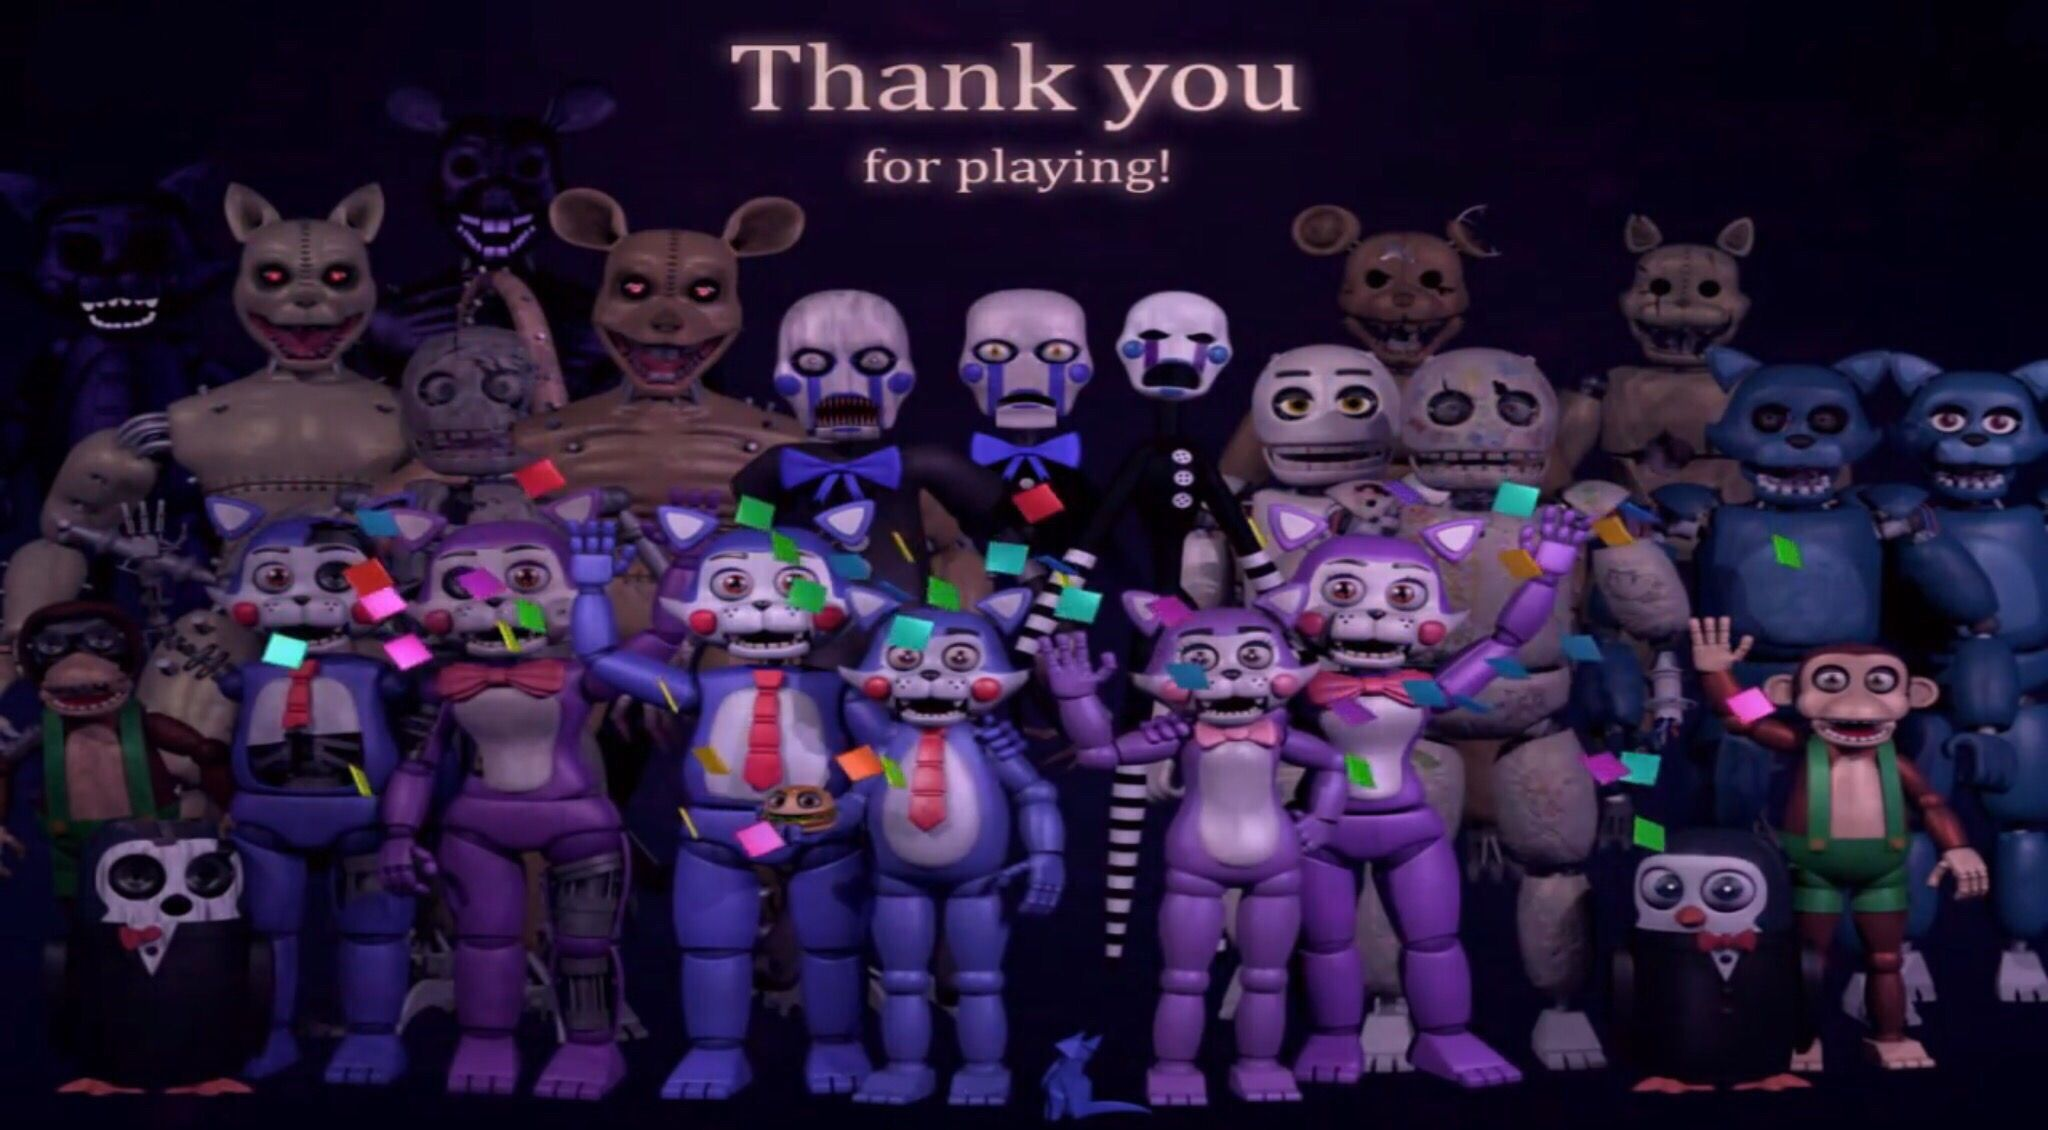 Fnac Thank You Image Five Night Fnaf Wallpapers Iphone